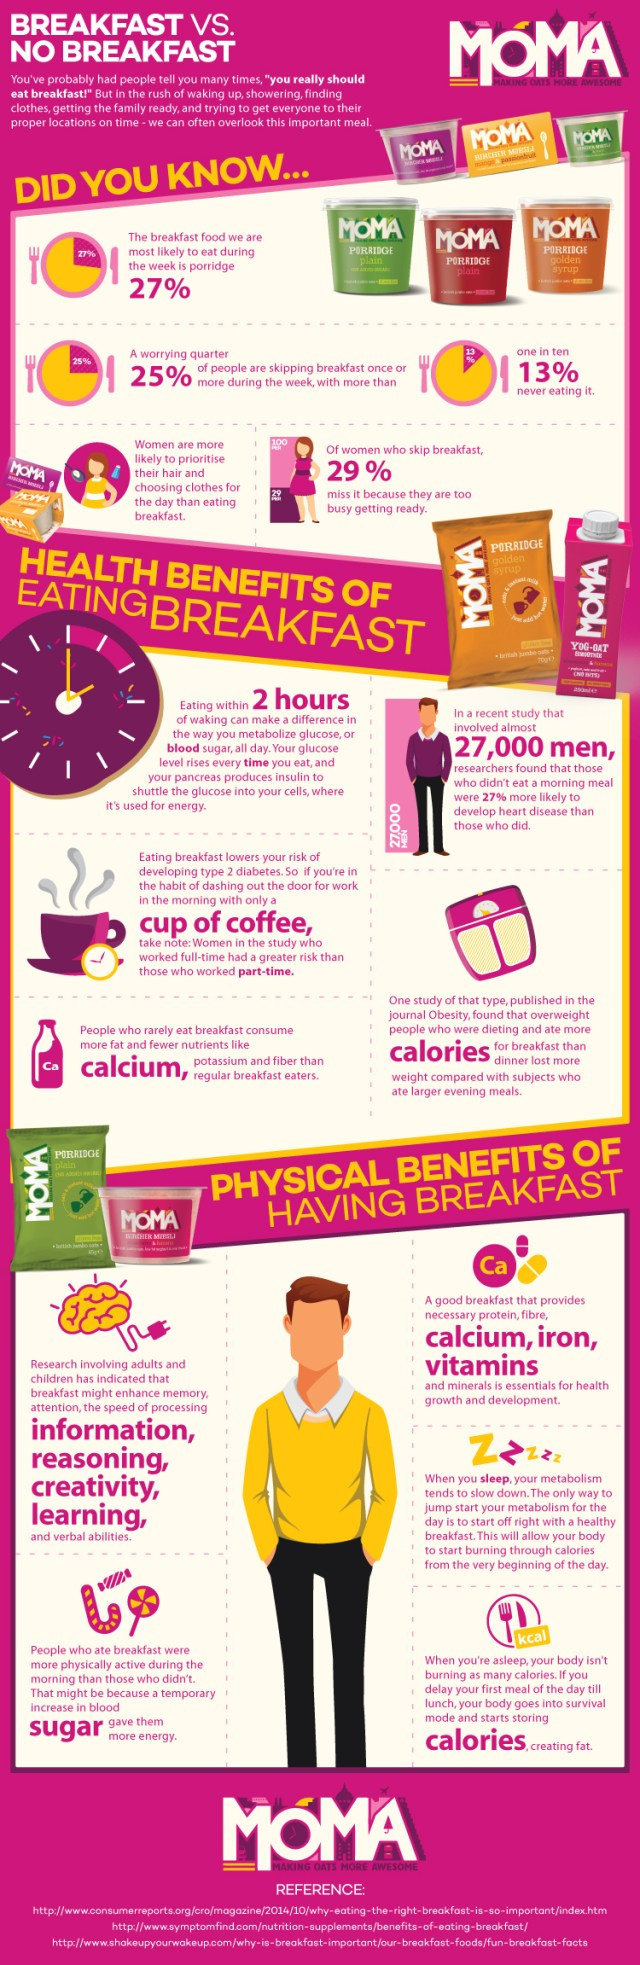 Breakfast-vs.-No-Breakfast - The health benefits of eating breakfast